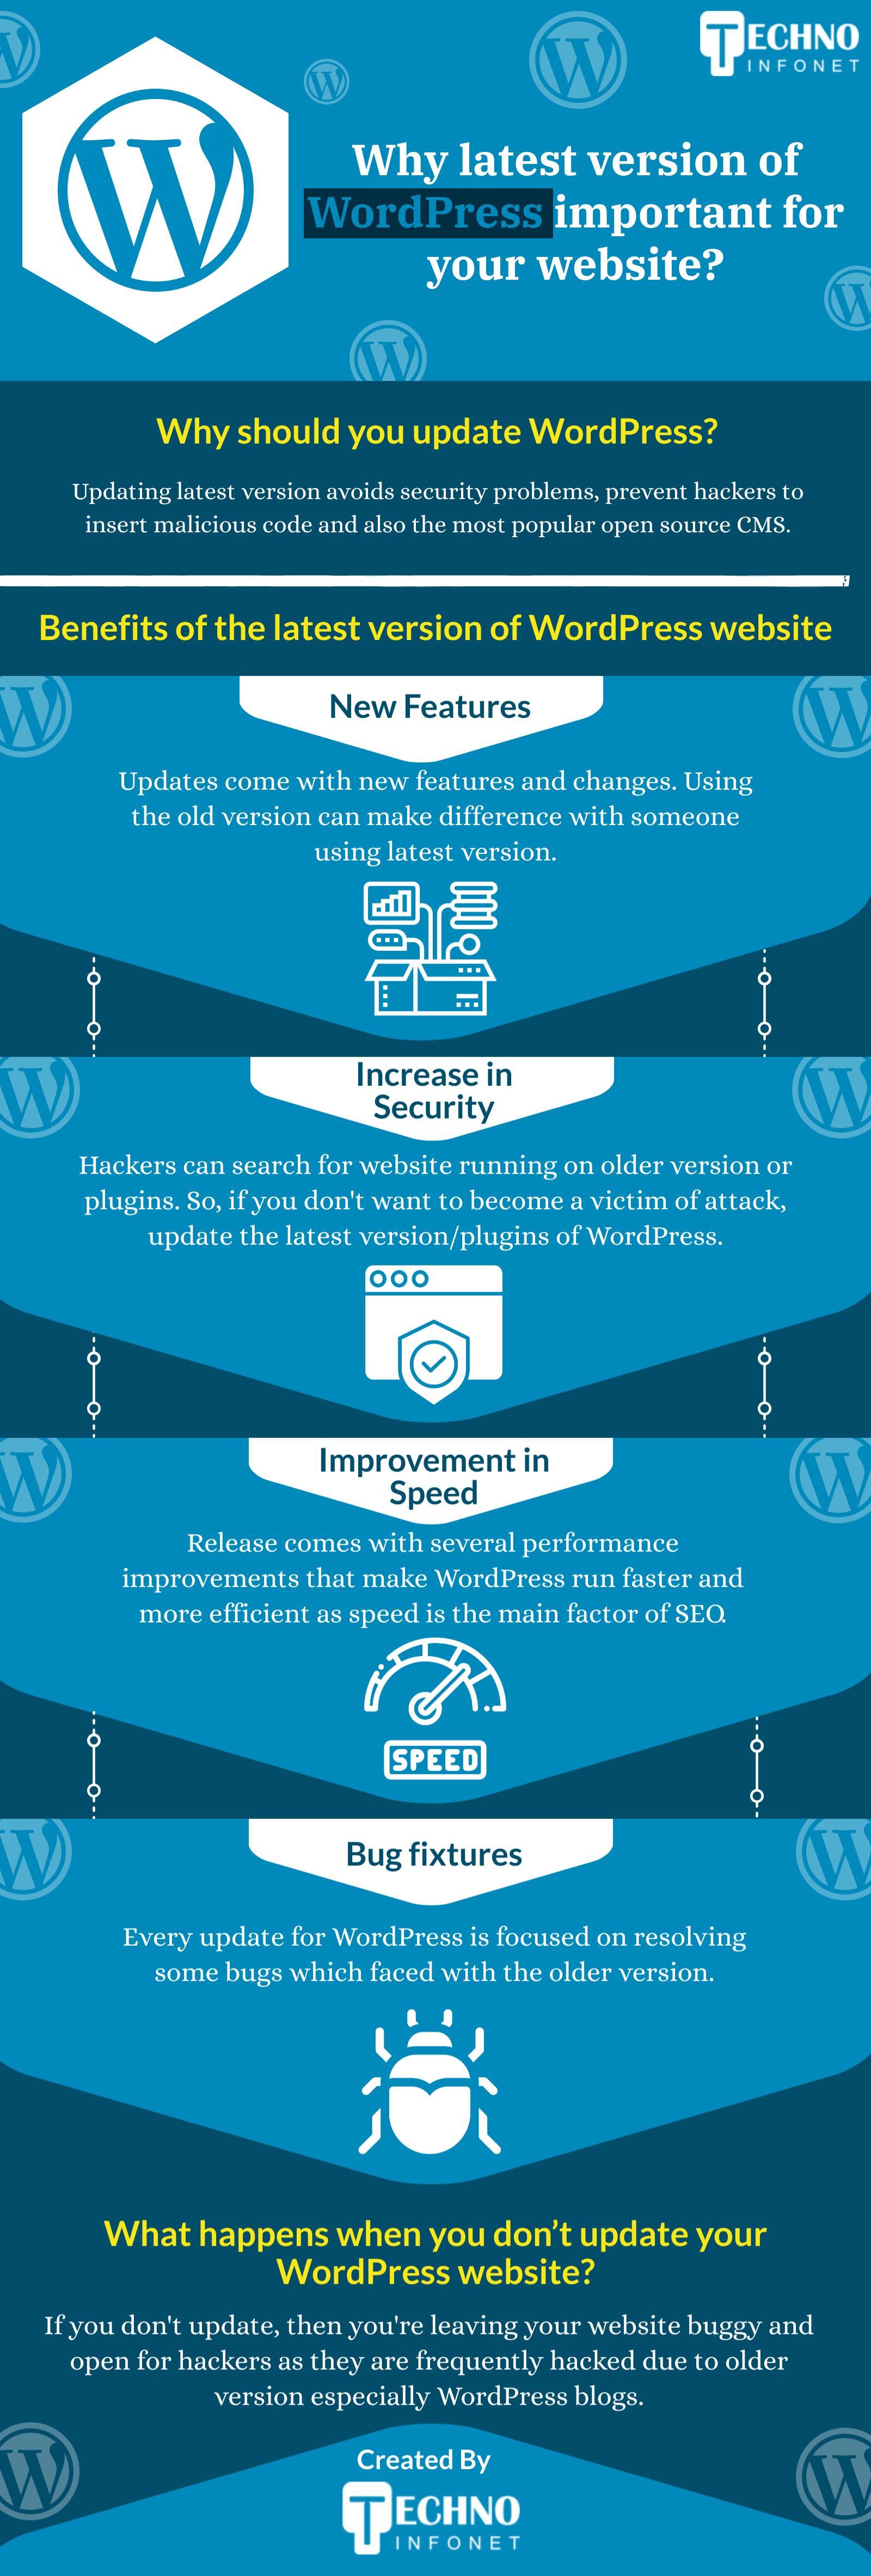 Why latest version of WordPress important for your website?